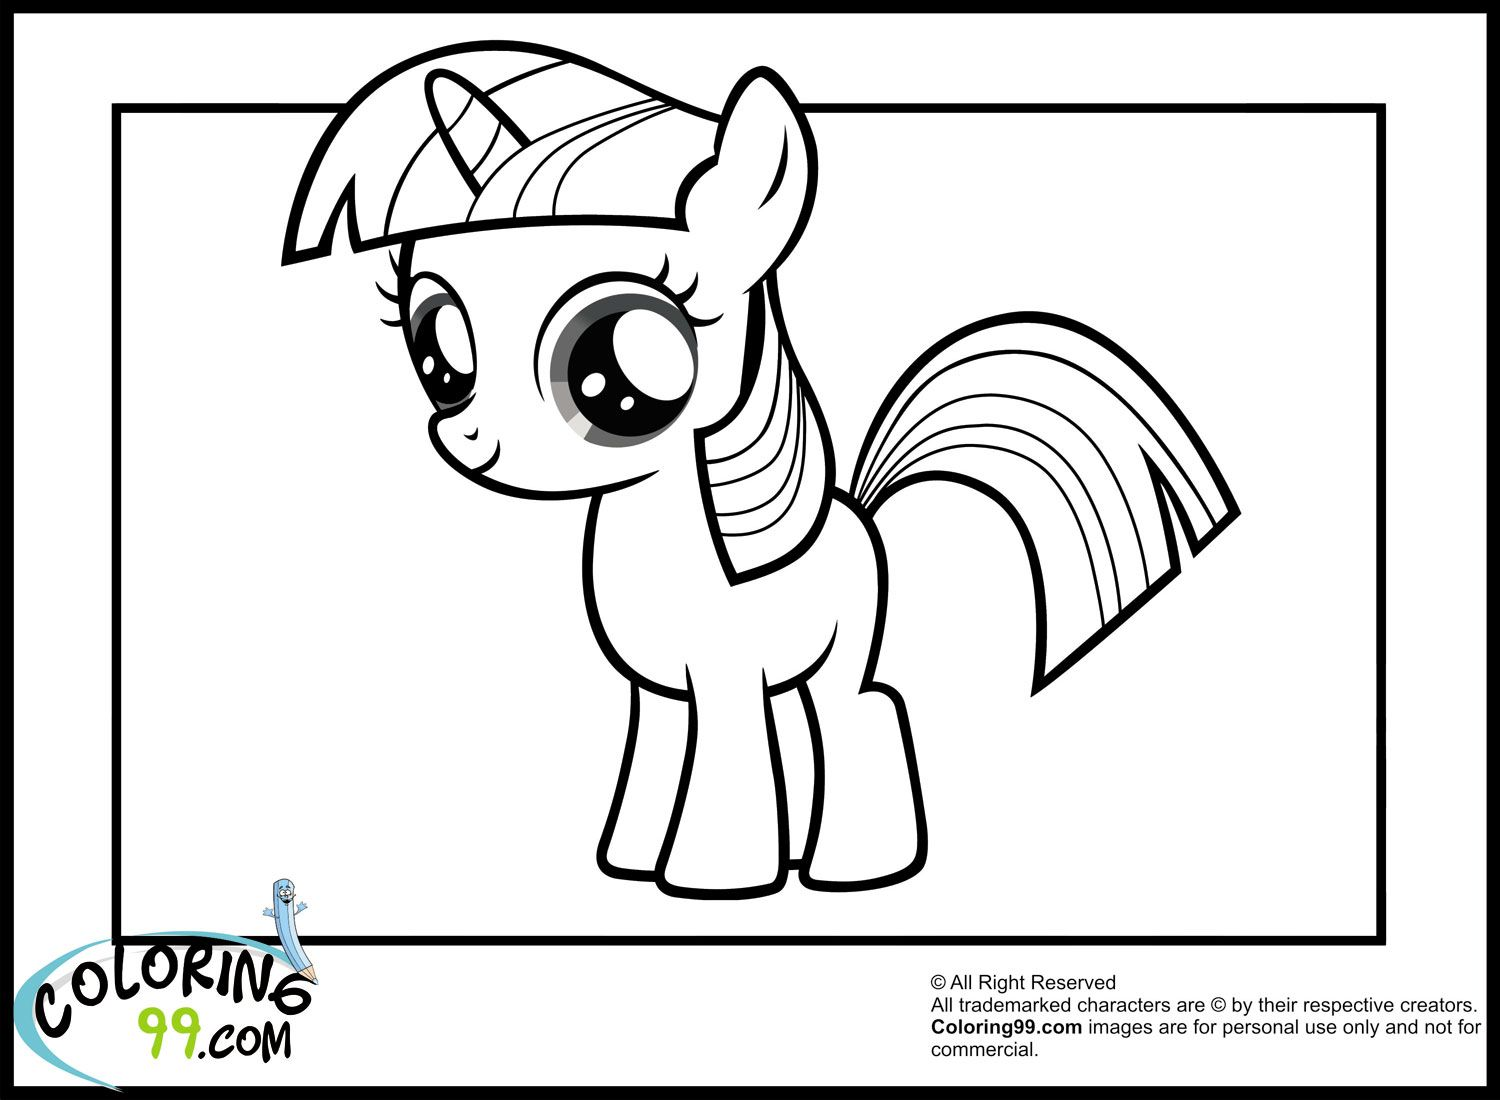 twilight sparkle coloring pages My Little Pony Coloring Pages Twilight | My Little Pony Twilight  twilight sparkle coloring pages